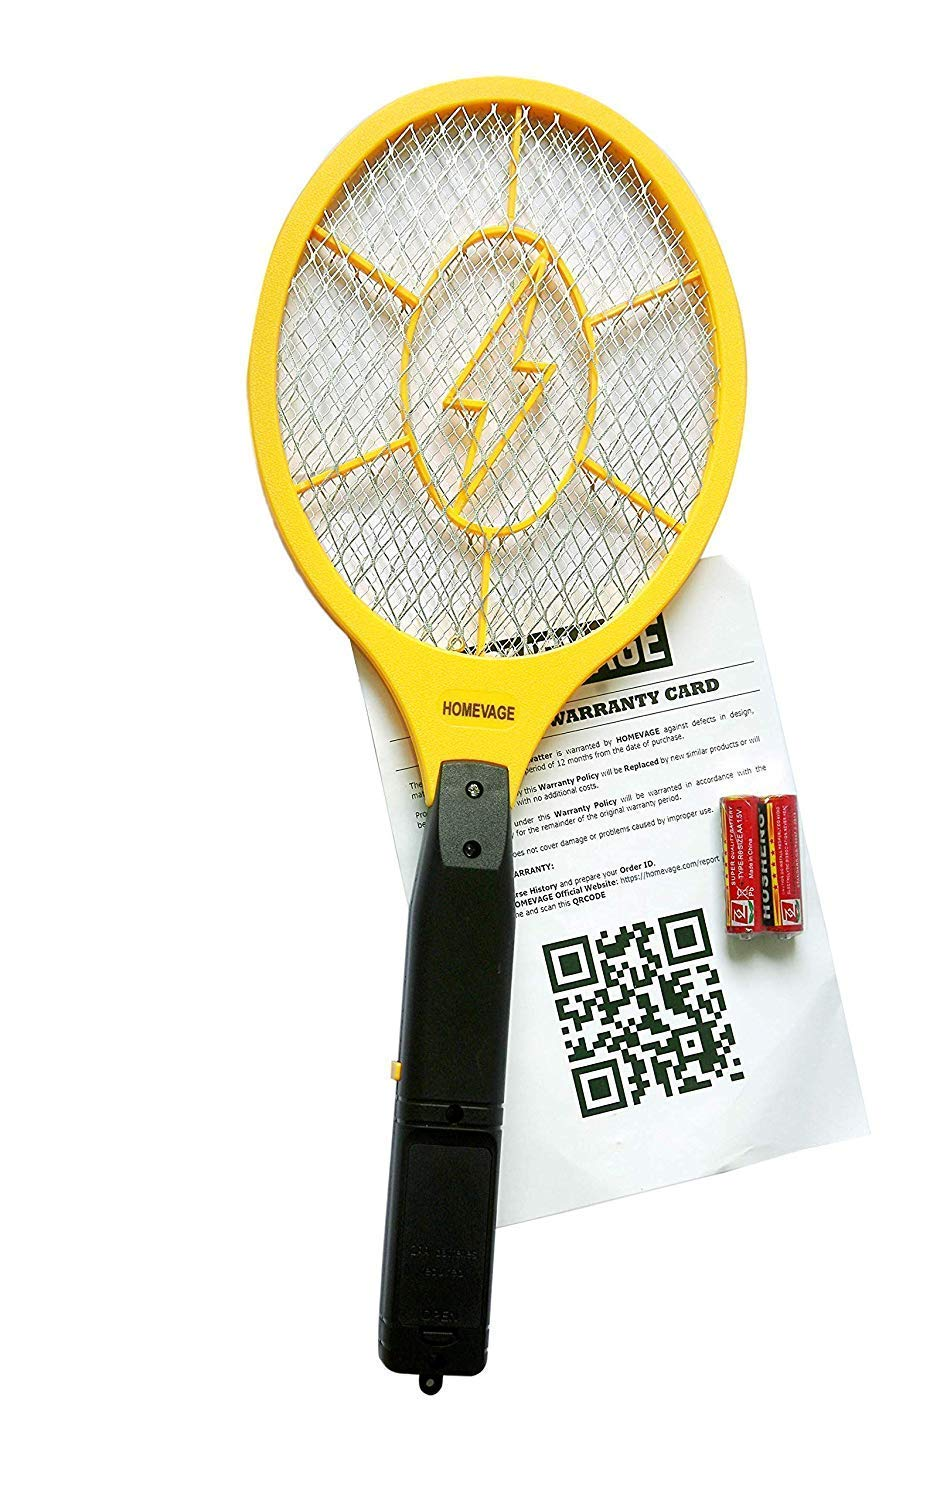 Electric Fly Swatter - Bug Zapper - Best High Voltage Handheld Mosquito, Swat Wasp, Insect, Fruit Fly Trap Killer Zacket For Indoor, Travel, Campings and Outdoor Control (2AA Batteries Included)